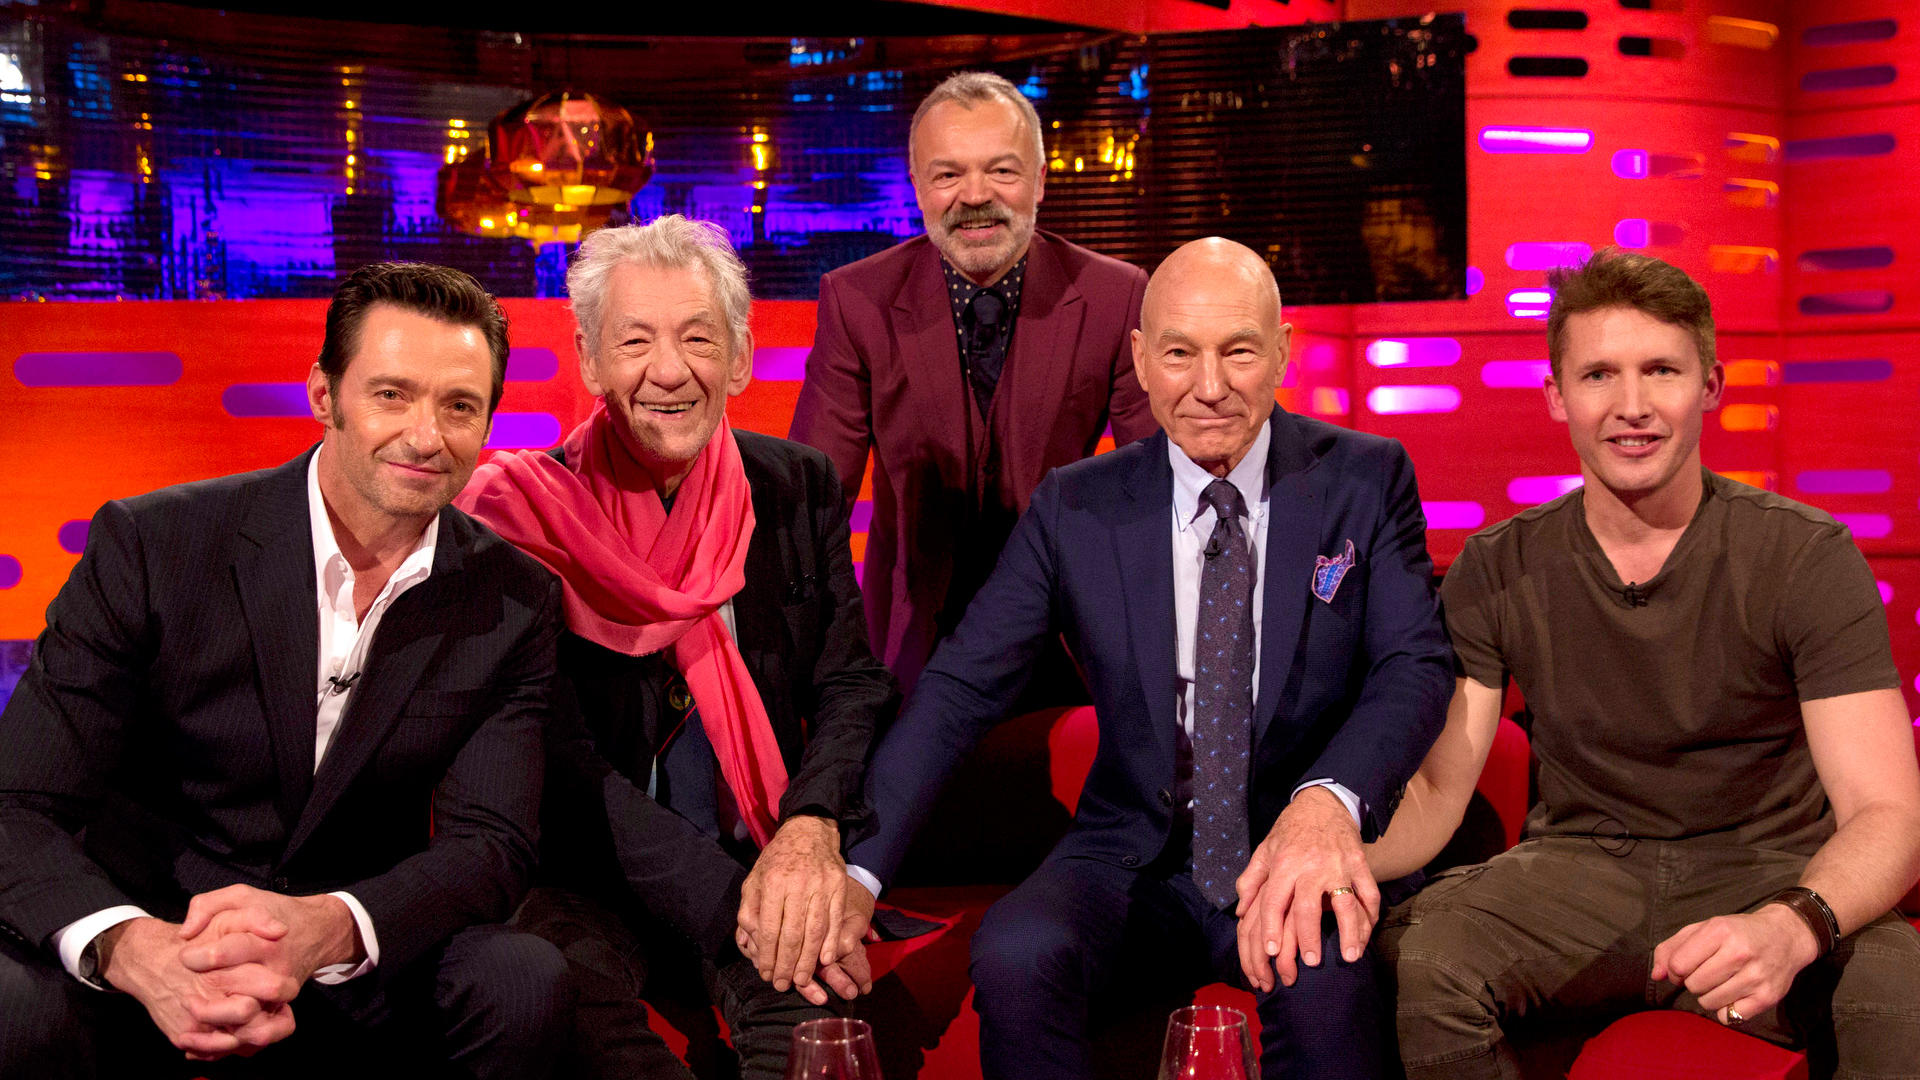 graham norton show s20e13